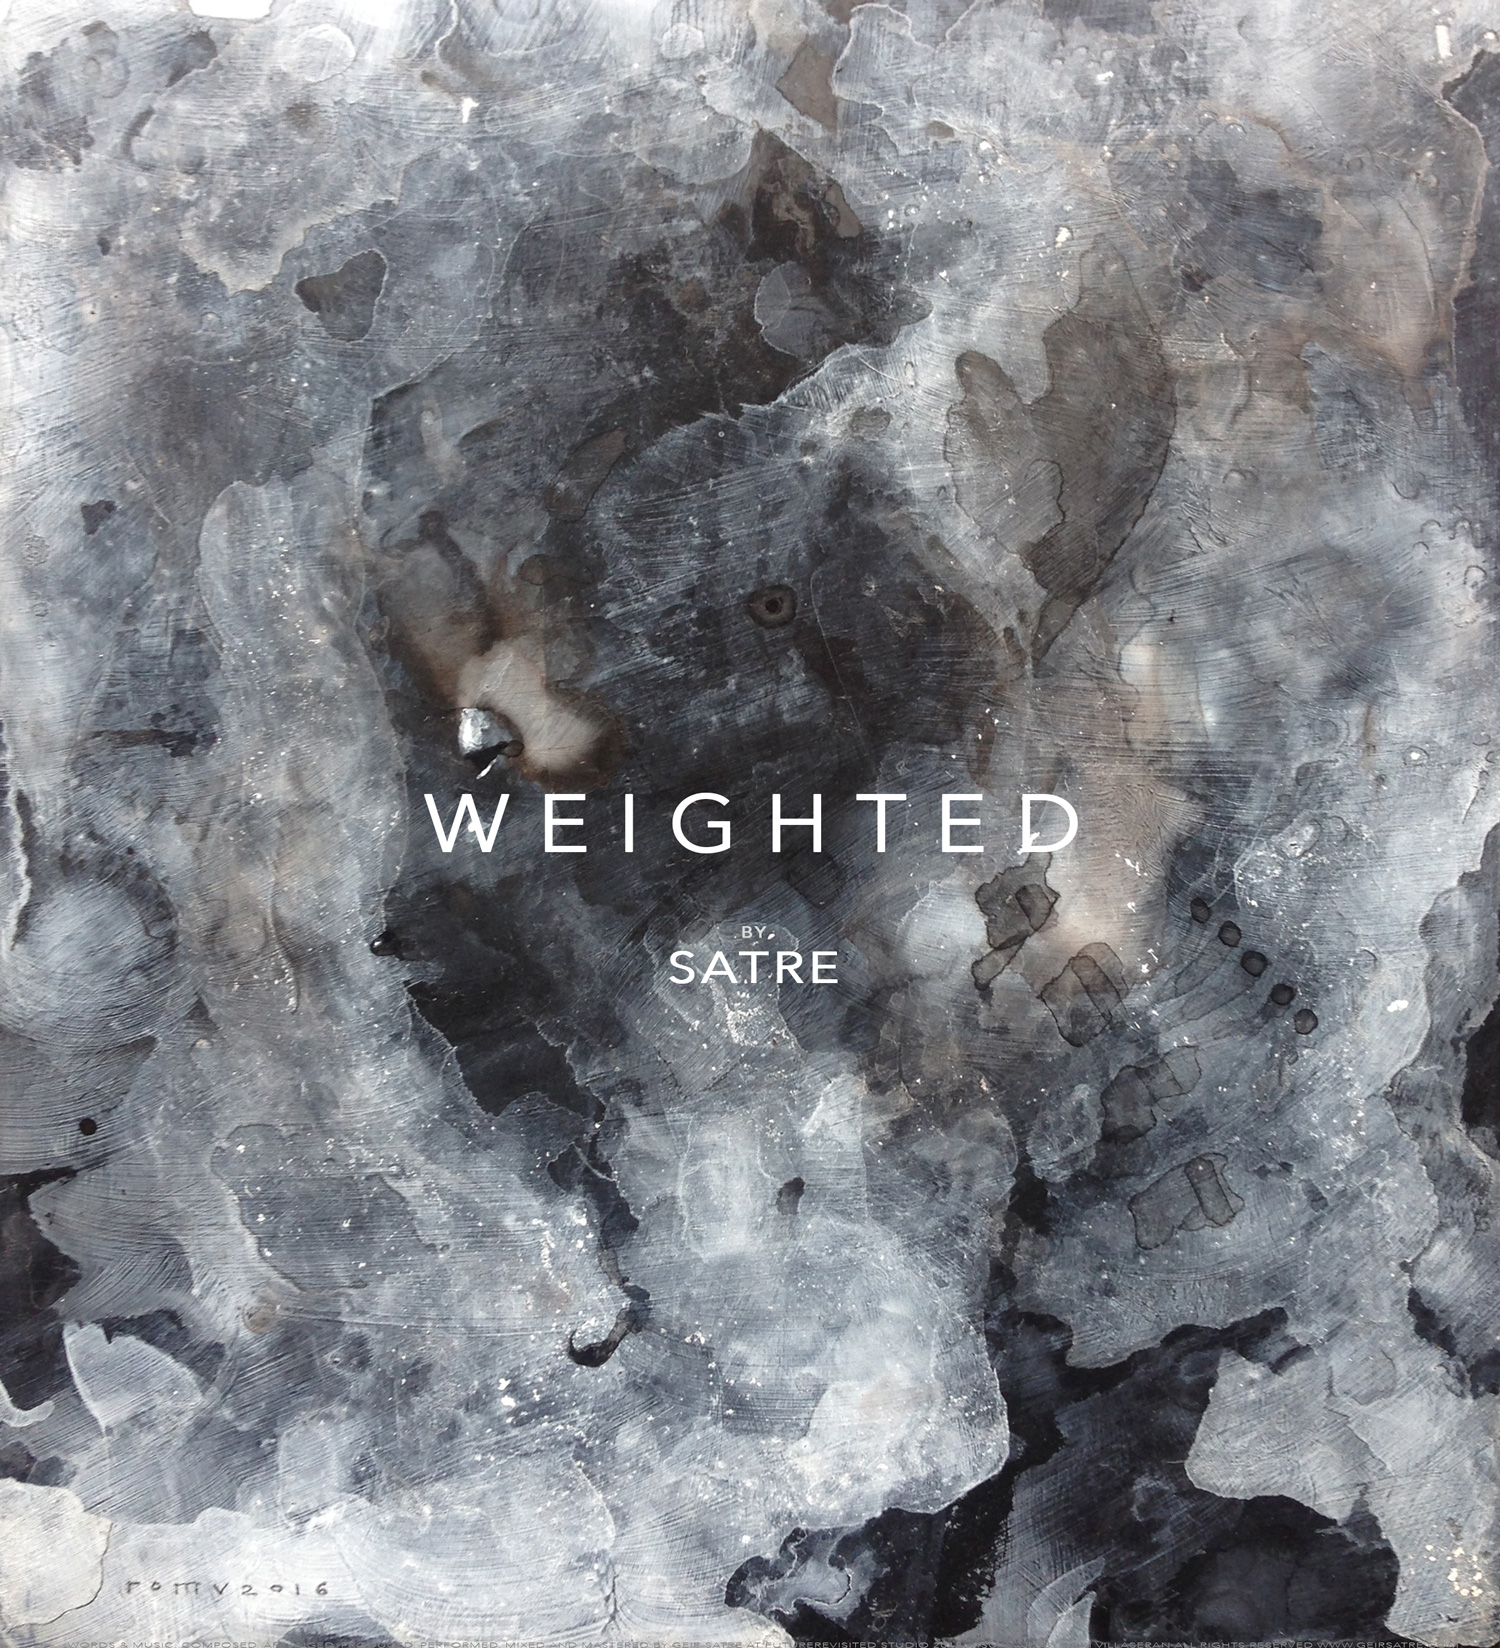 Weighted-Front-geir-satre.jpg